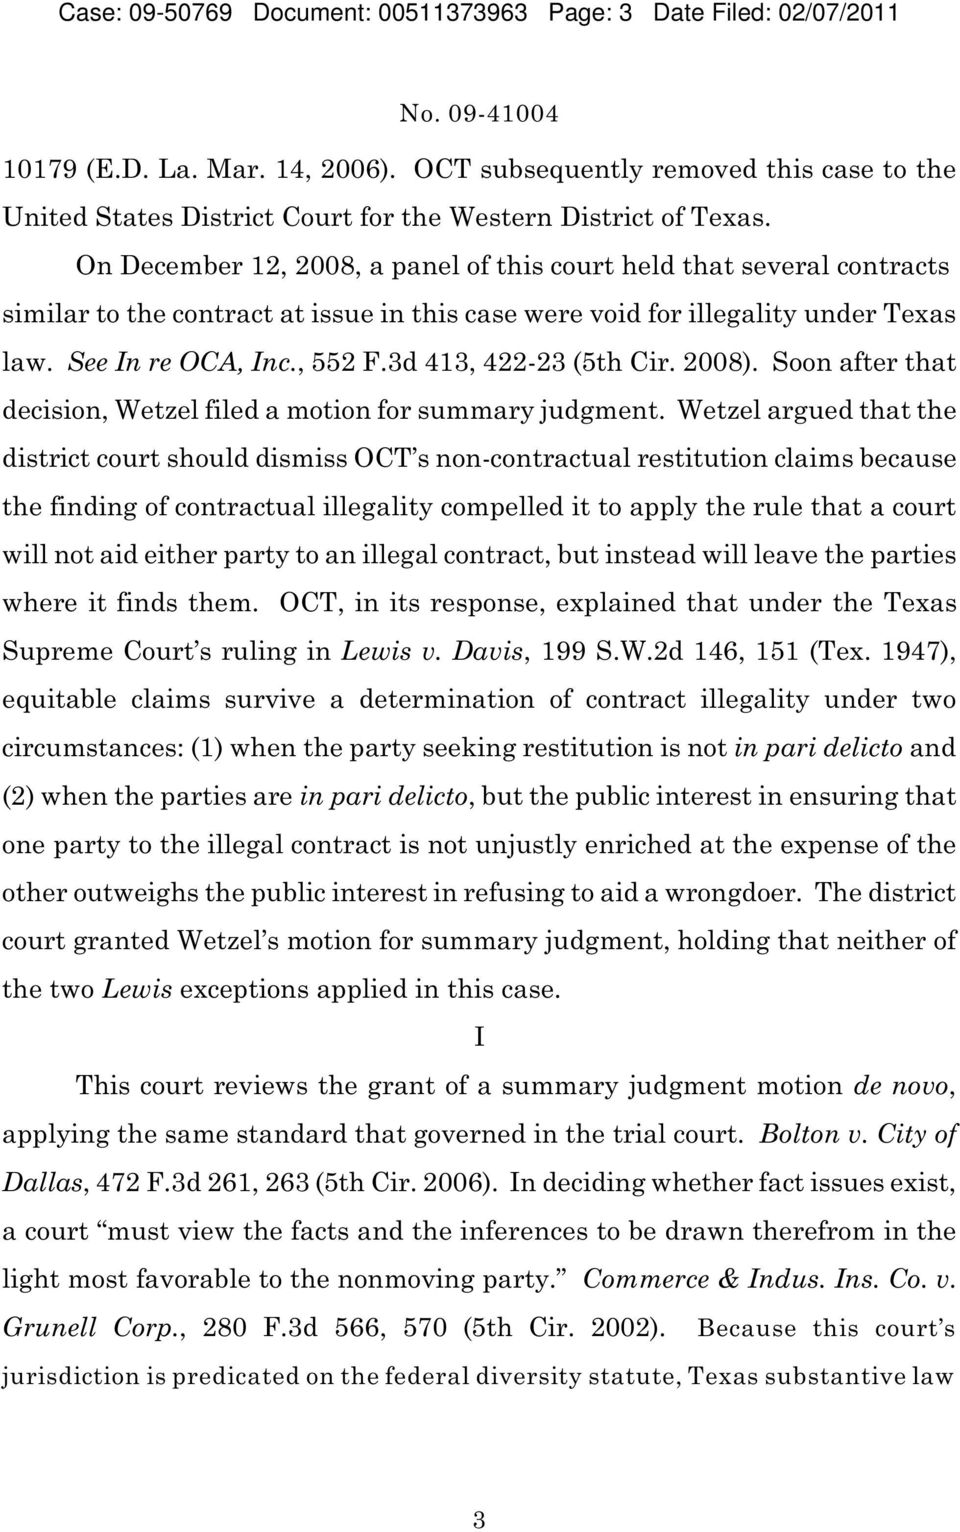 On December 12, 2008, a panel of this court held that several contracts similar to the contract at issue in this case were void for illegality under Texas law. See In re OCA, Inc., 552 F.